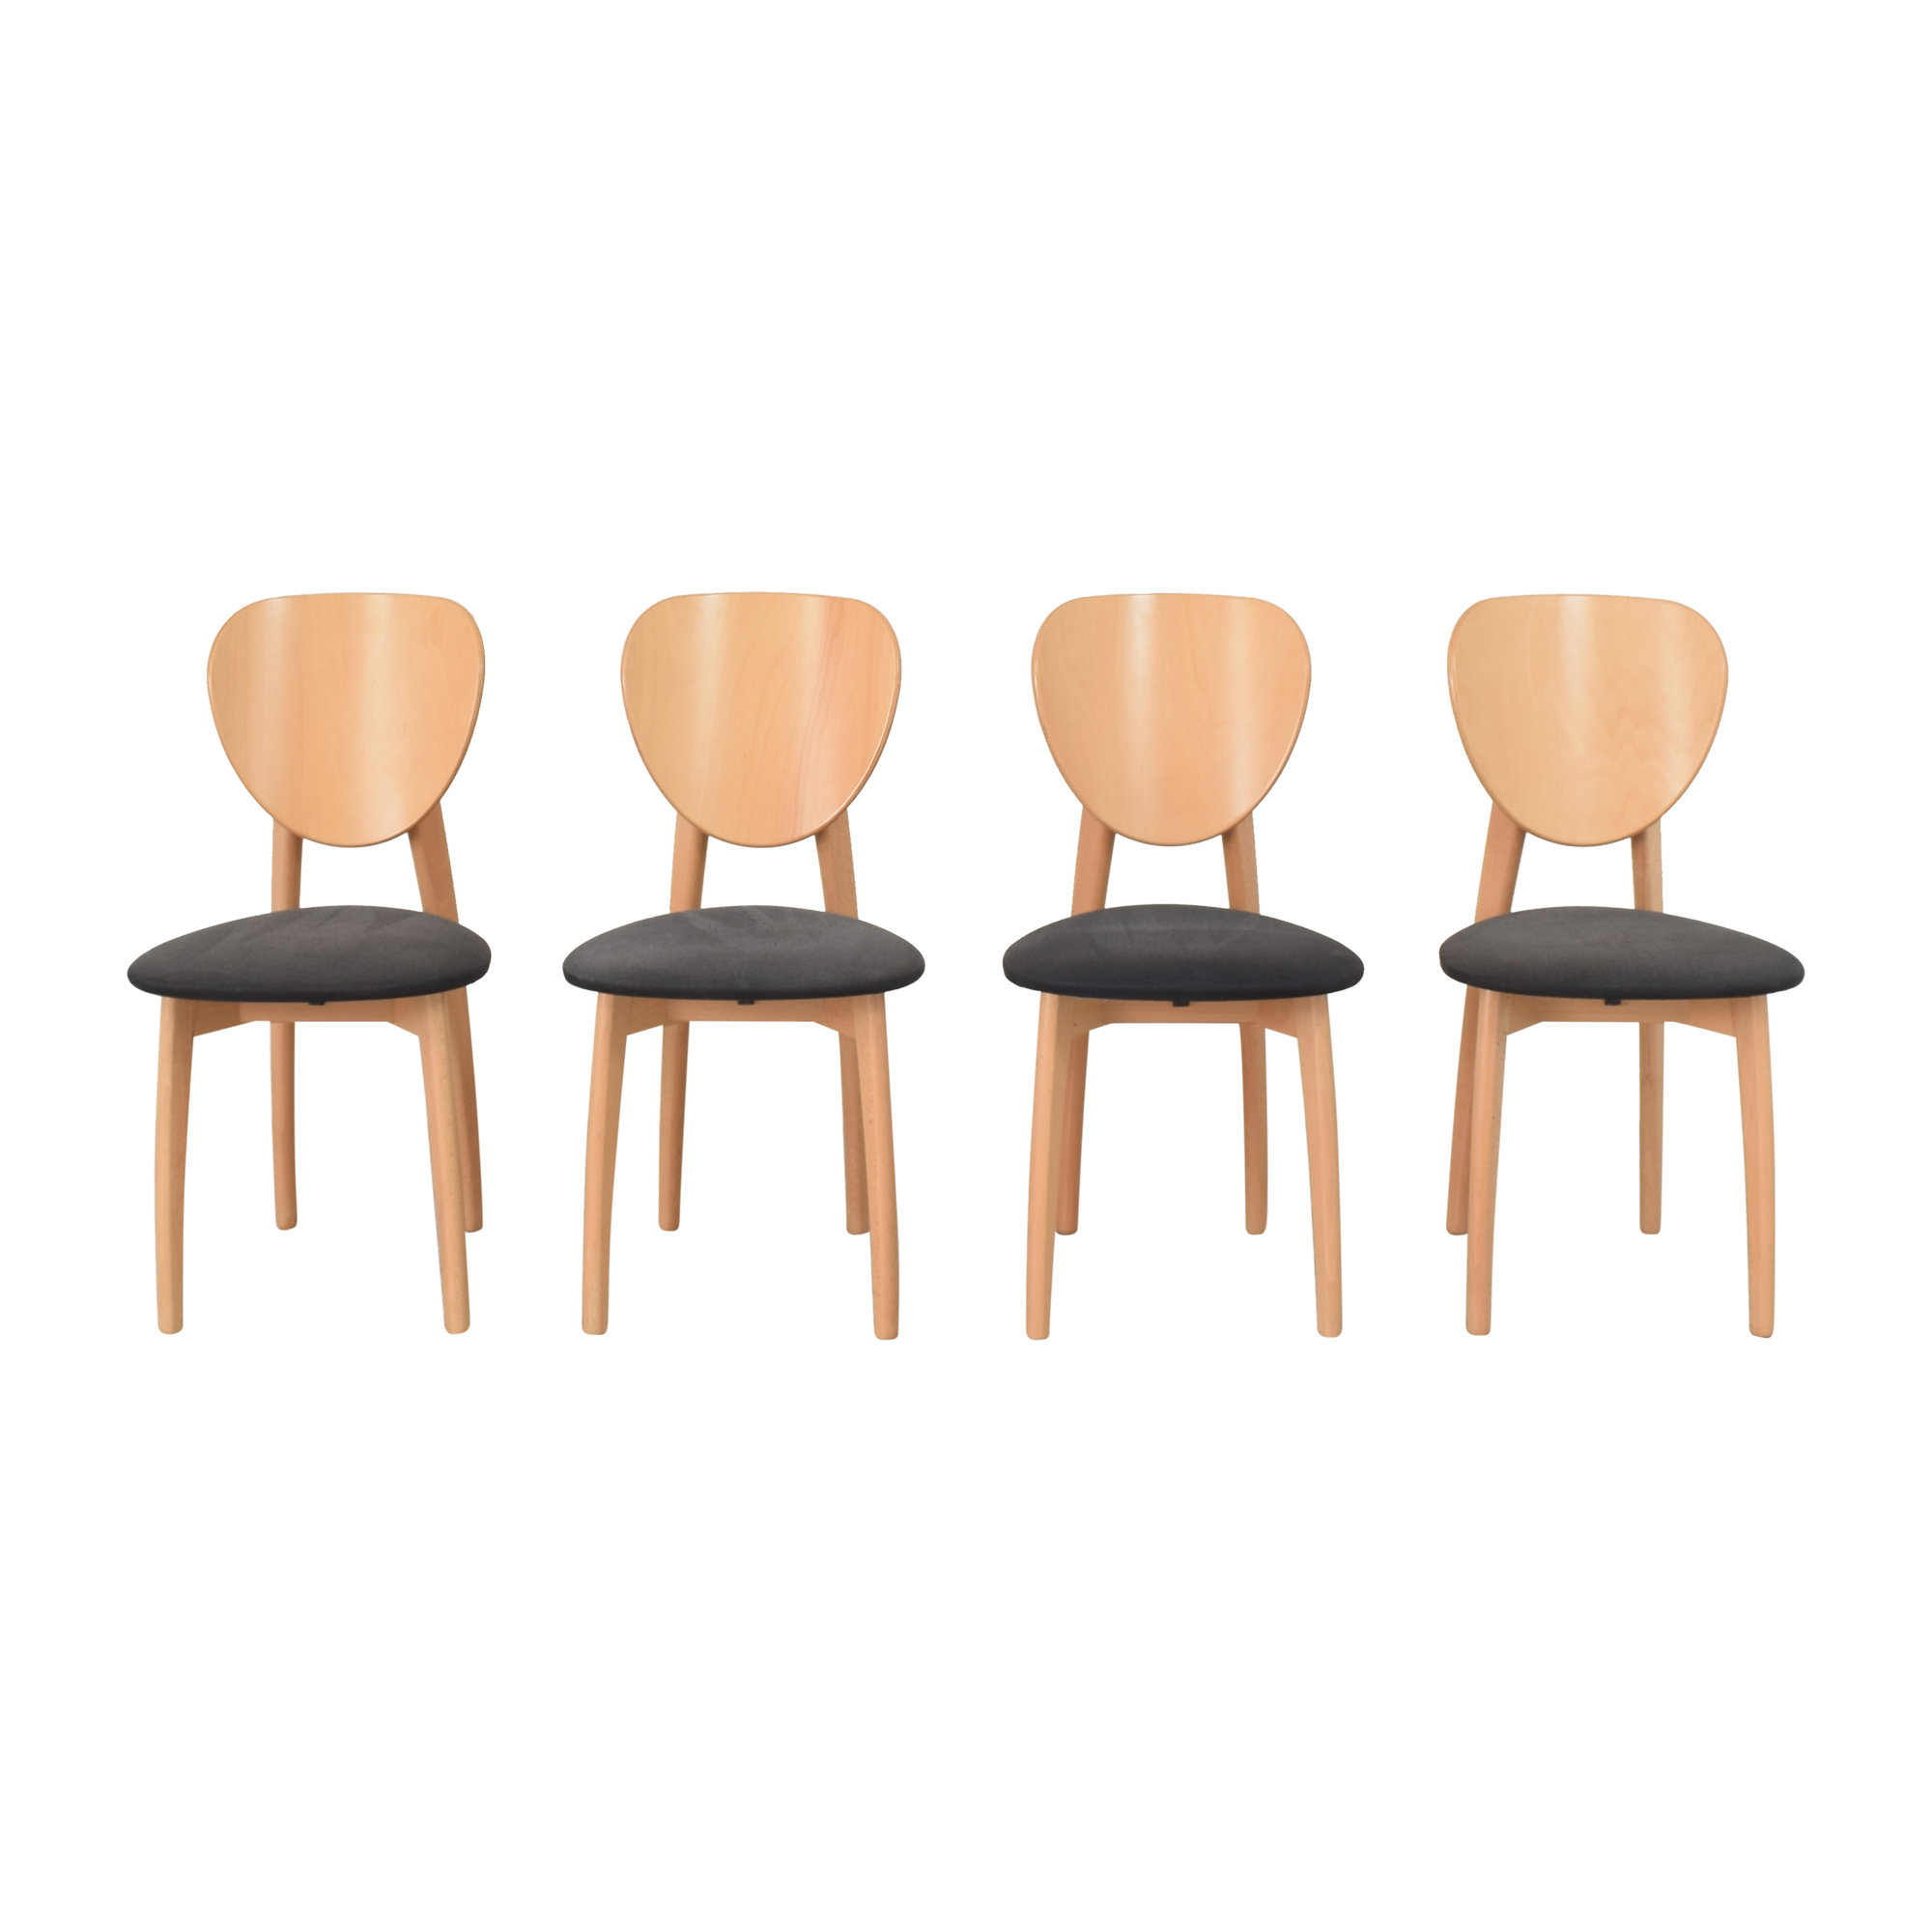 buy Calligaris Modern Dining Chairs Calligaris